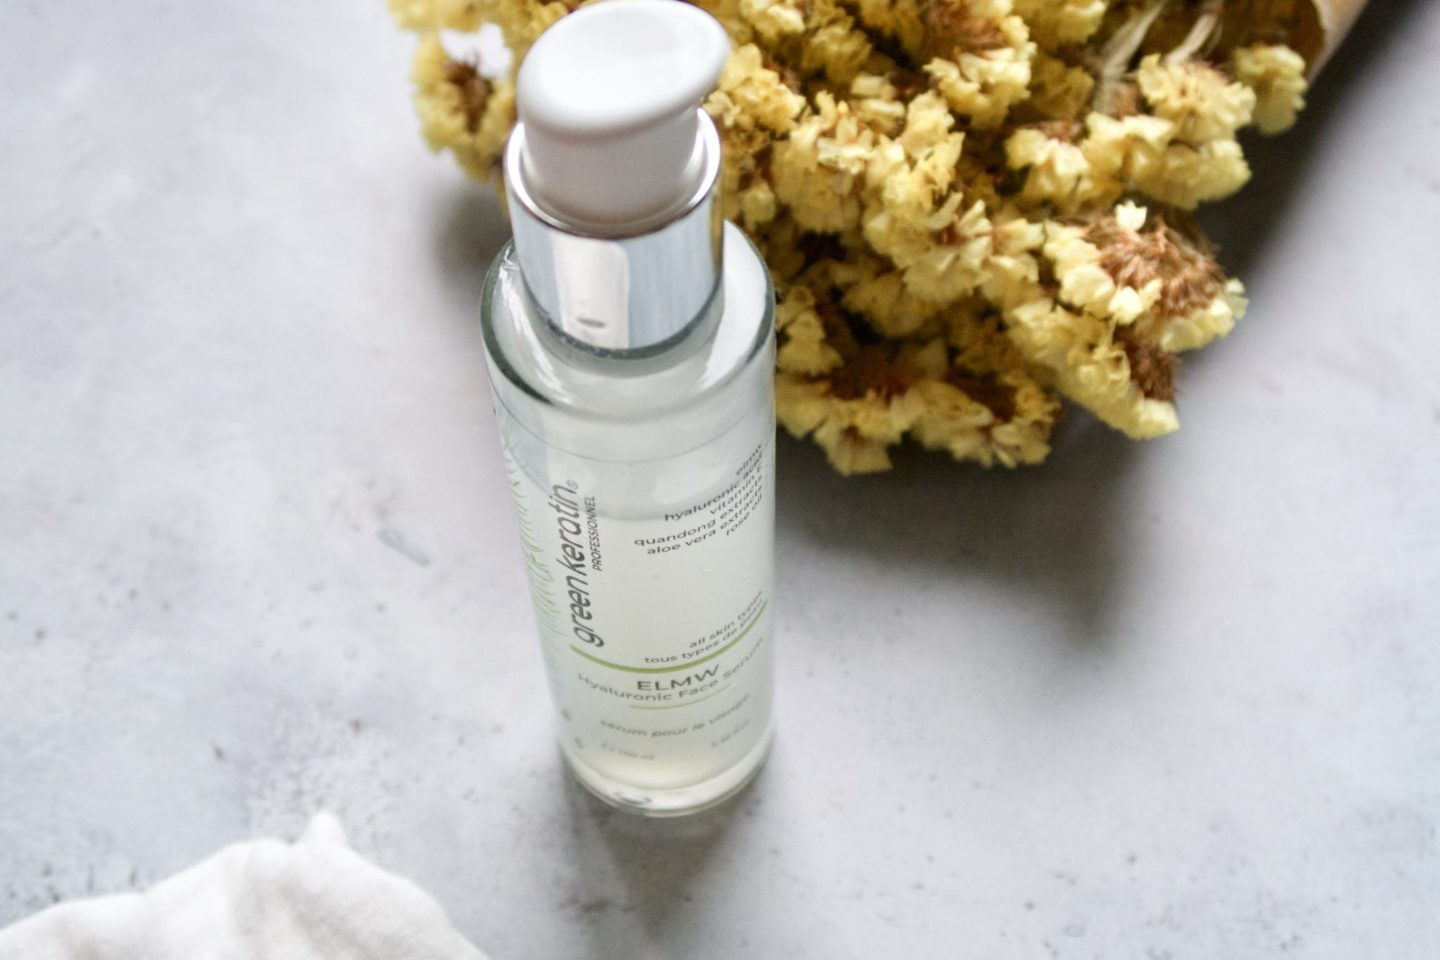 Green Keratin: Hyaluronic Face Serum #beaute #soin #soins #cosmetique #greenkeratin #hyaluronicfaceserum #serum